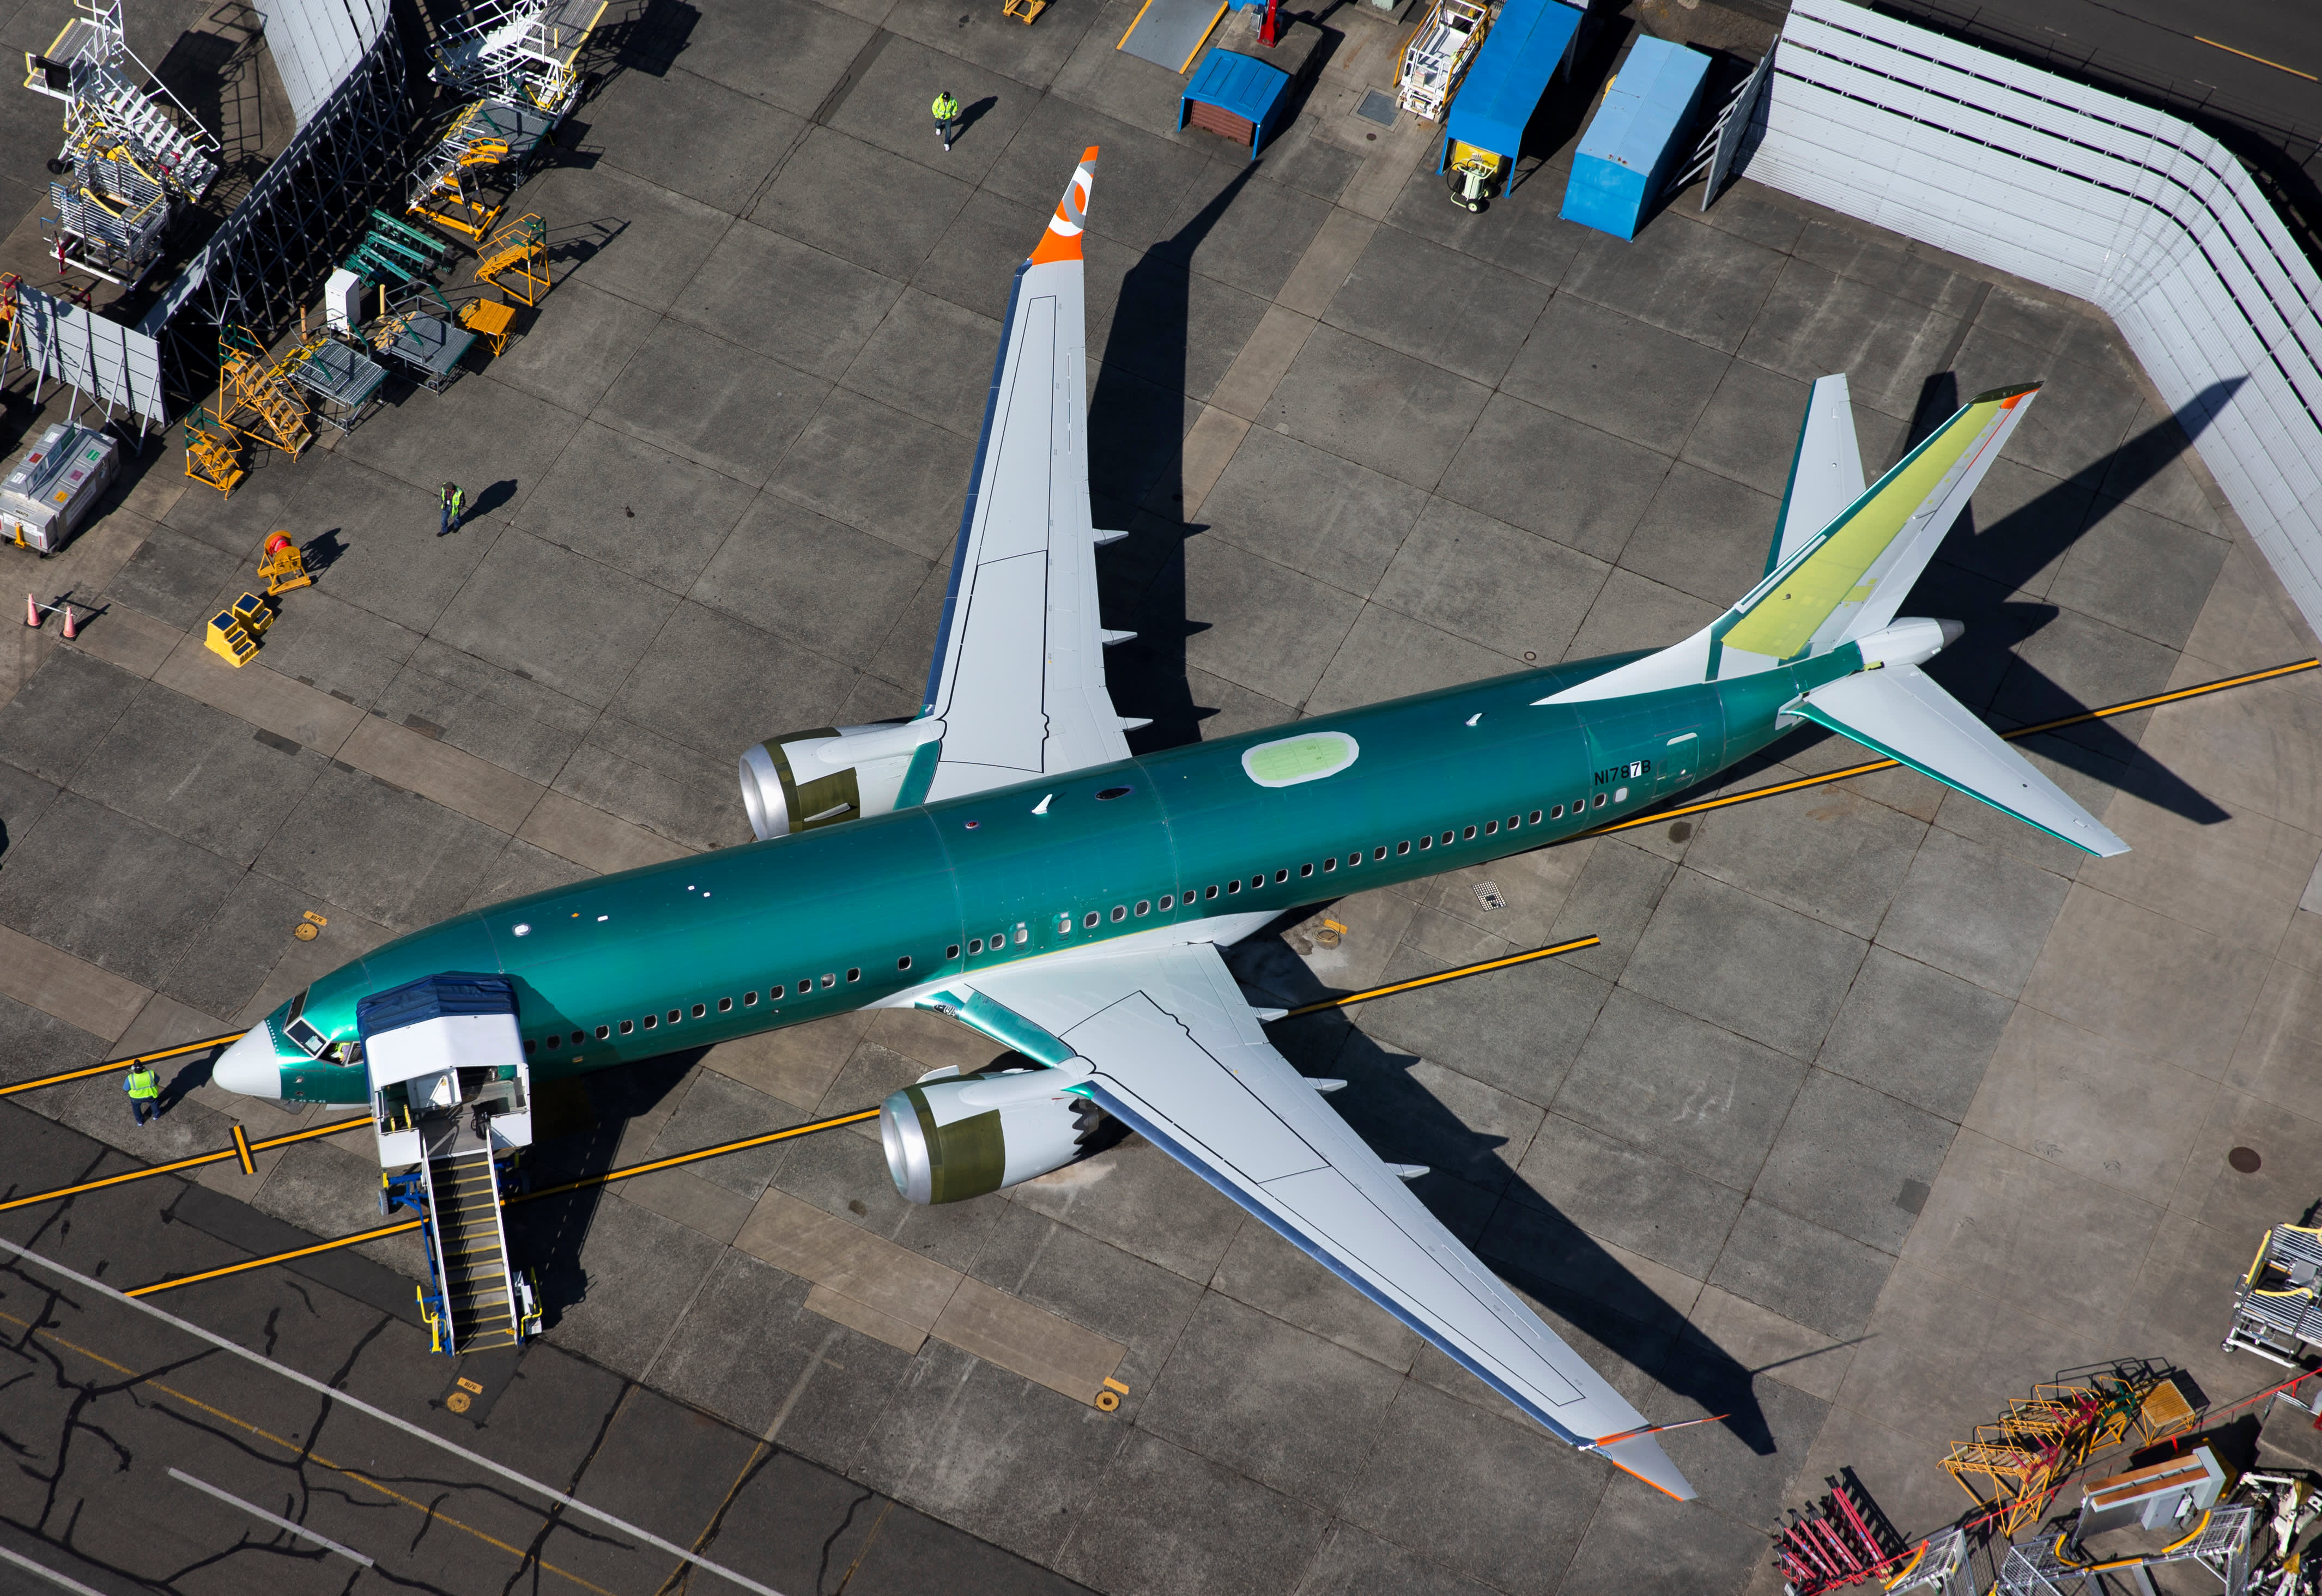 Boeing pauses 737 Max deliveries due to electrical issue, warns of 'light' April handovers